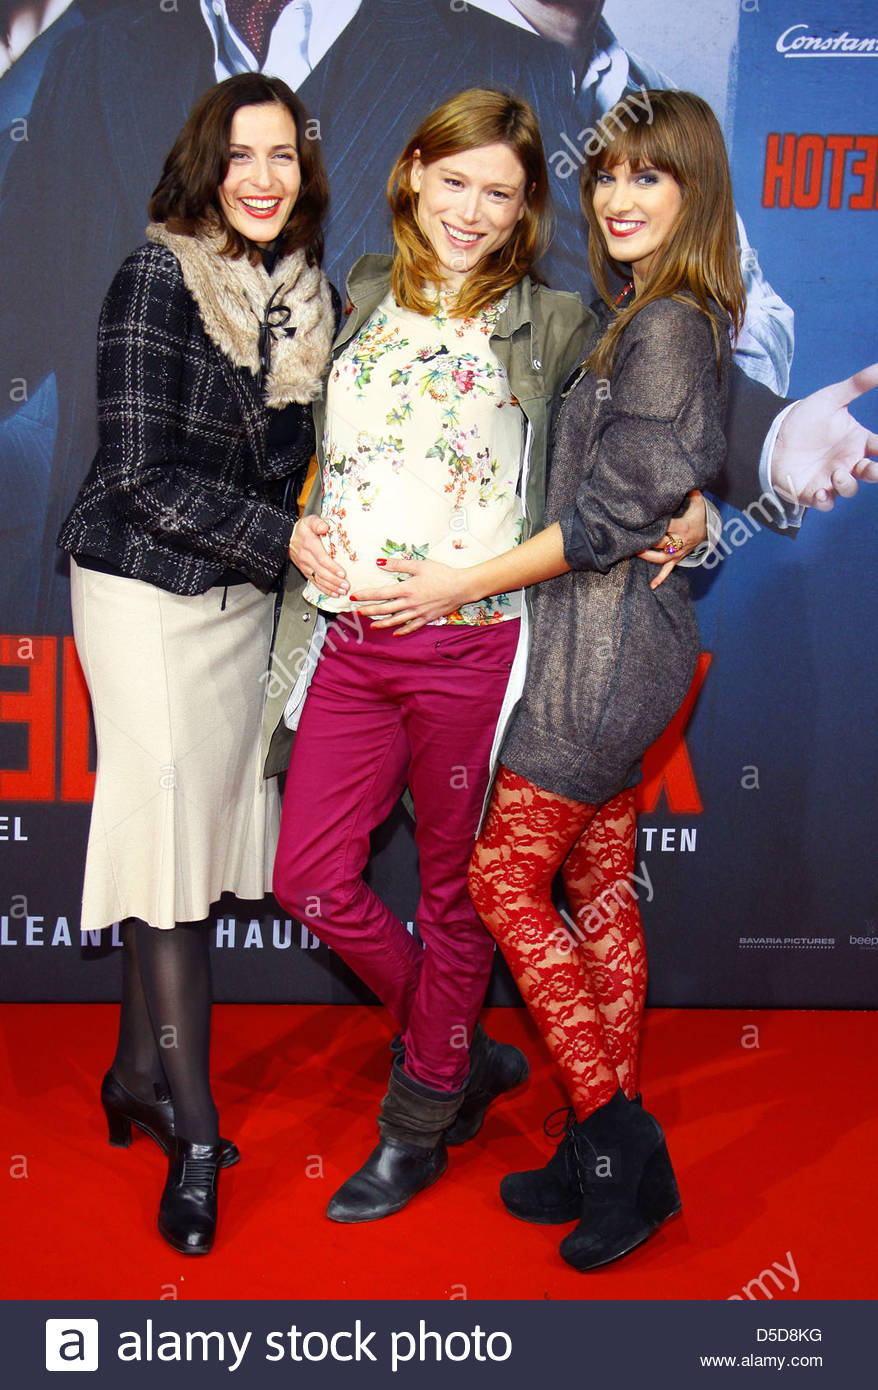 For pregnant ladies bvgg - Ulrike Frank Pregnant Lena Ehlers And Isabell Horn At The Premiere Of Hotel Lux